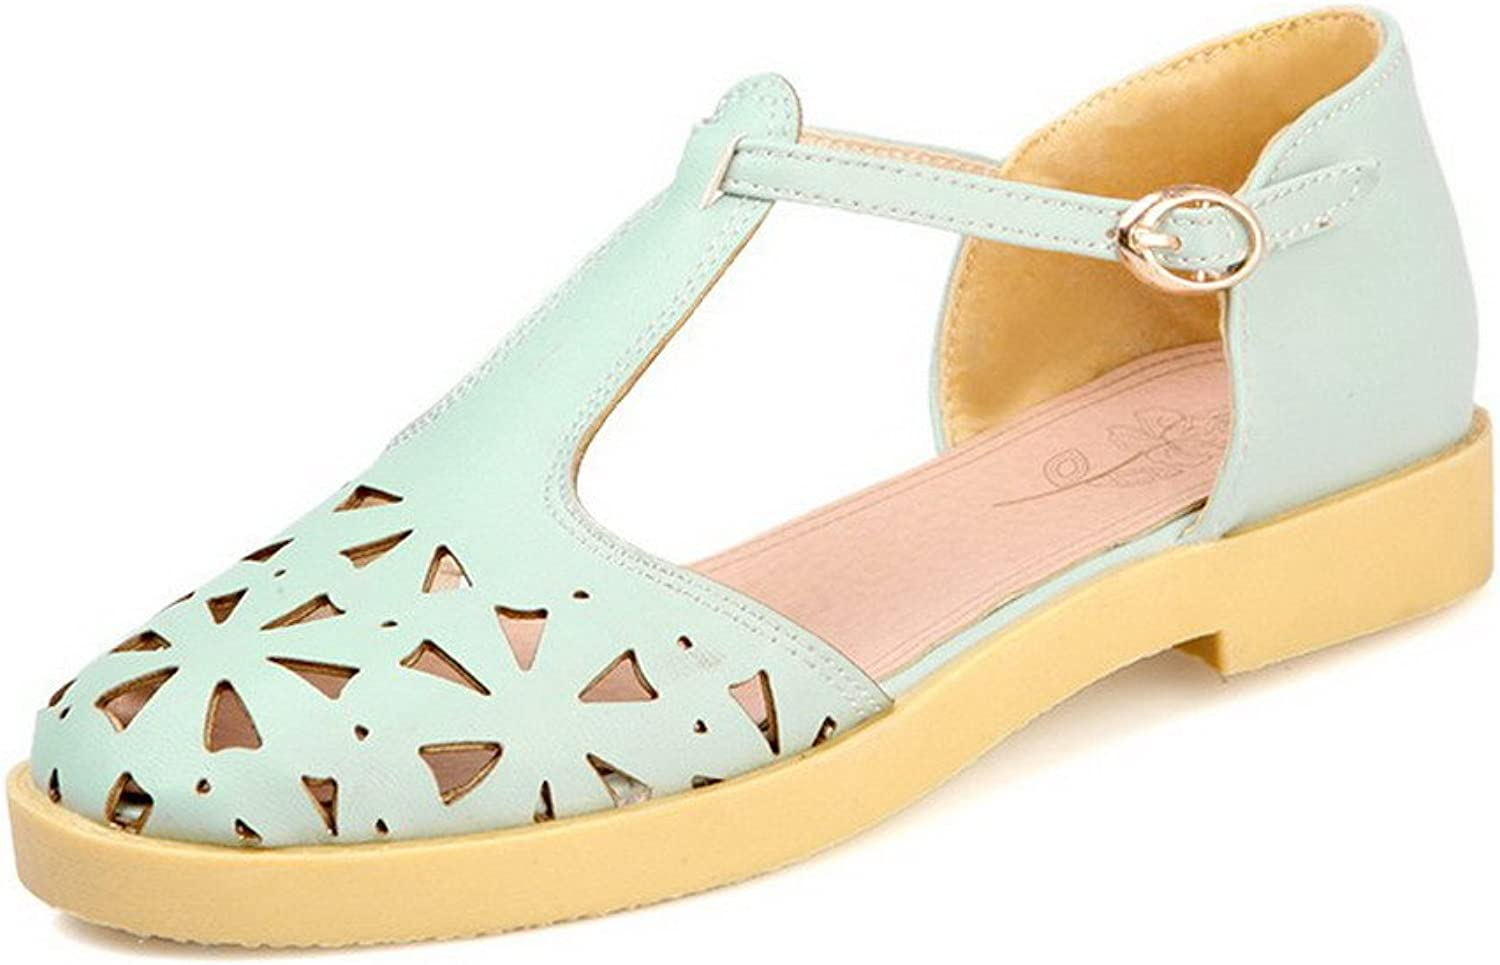 AllhqFashion Women's Low Heels Soft Material Solid Buckle Closed Toe Sandals